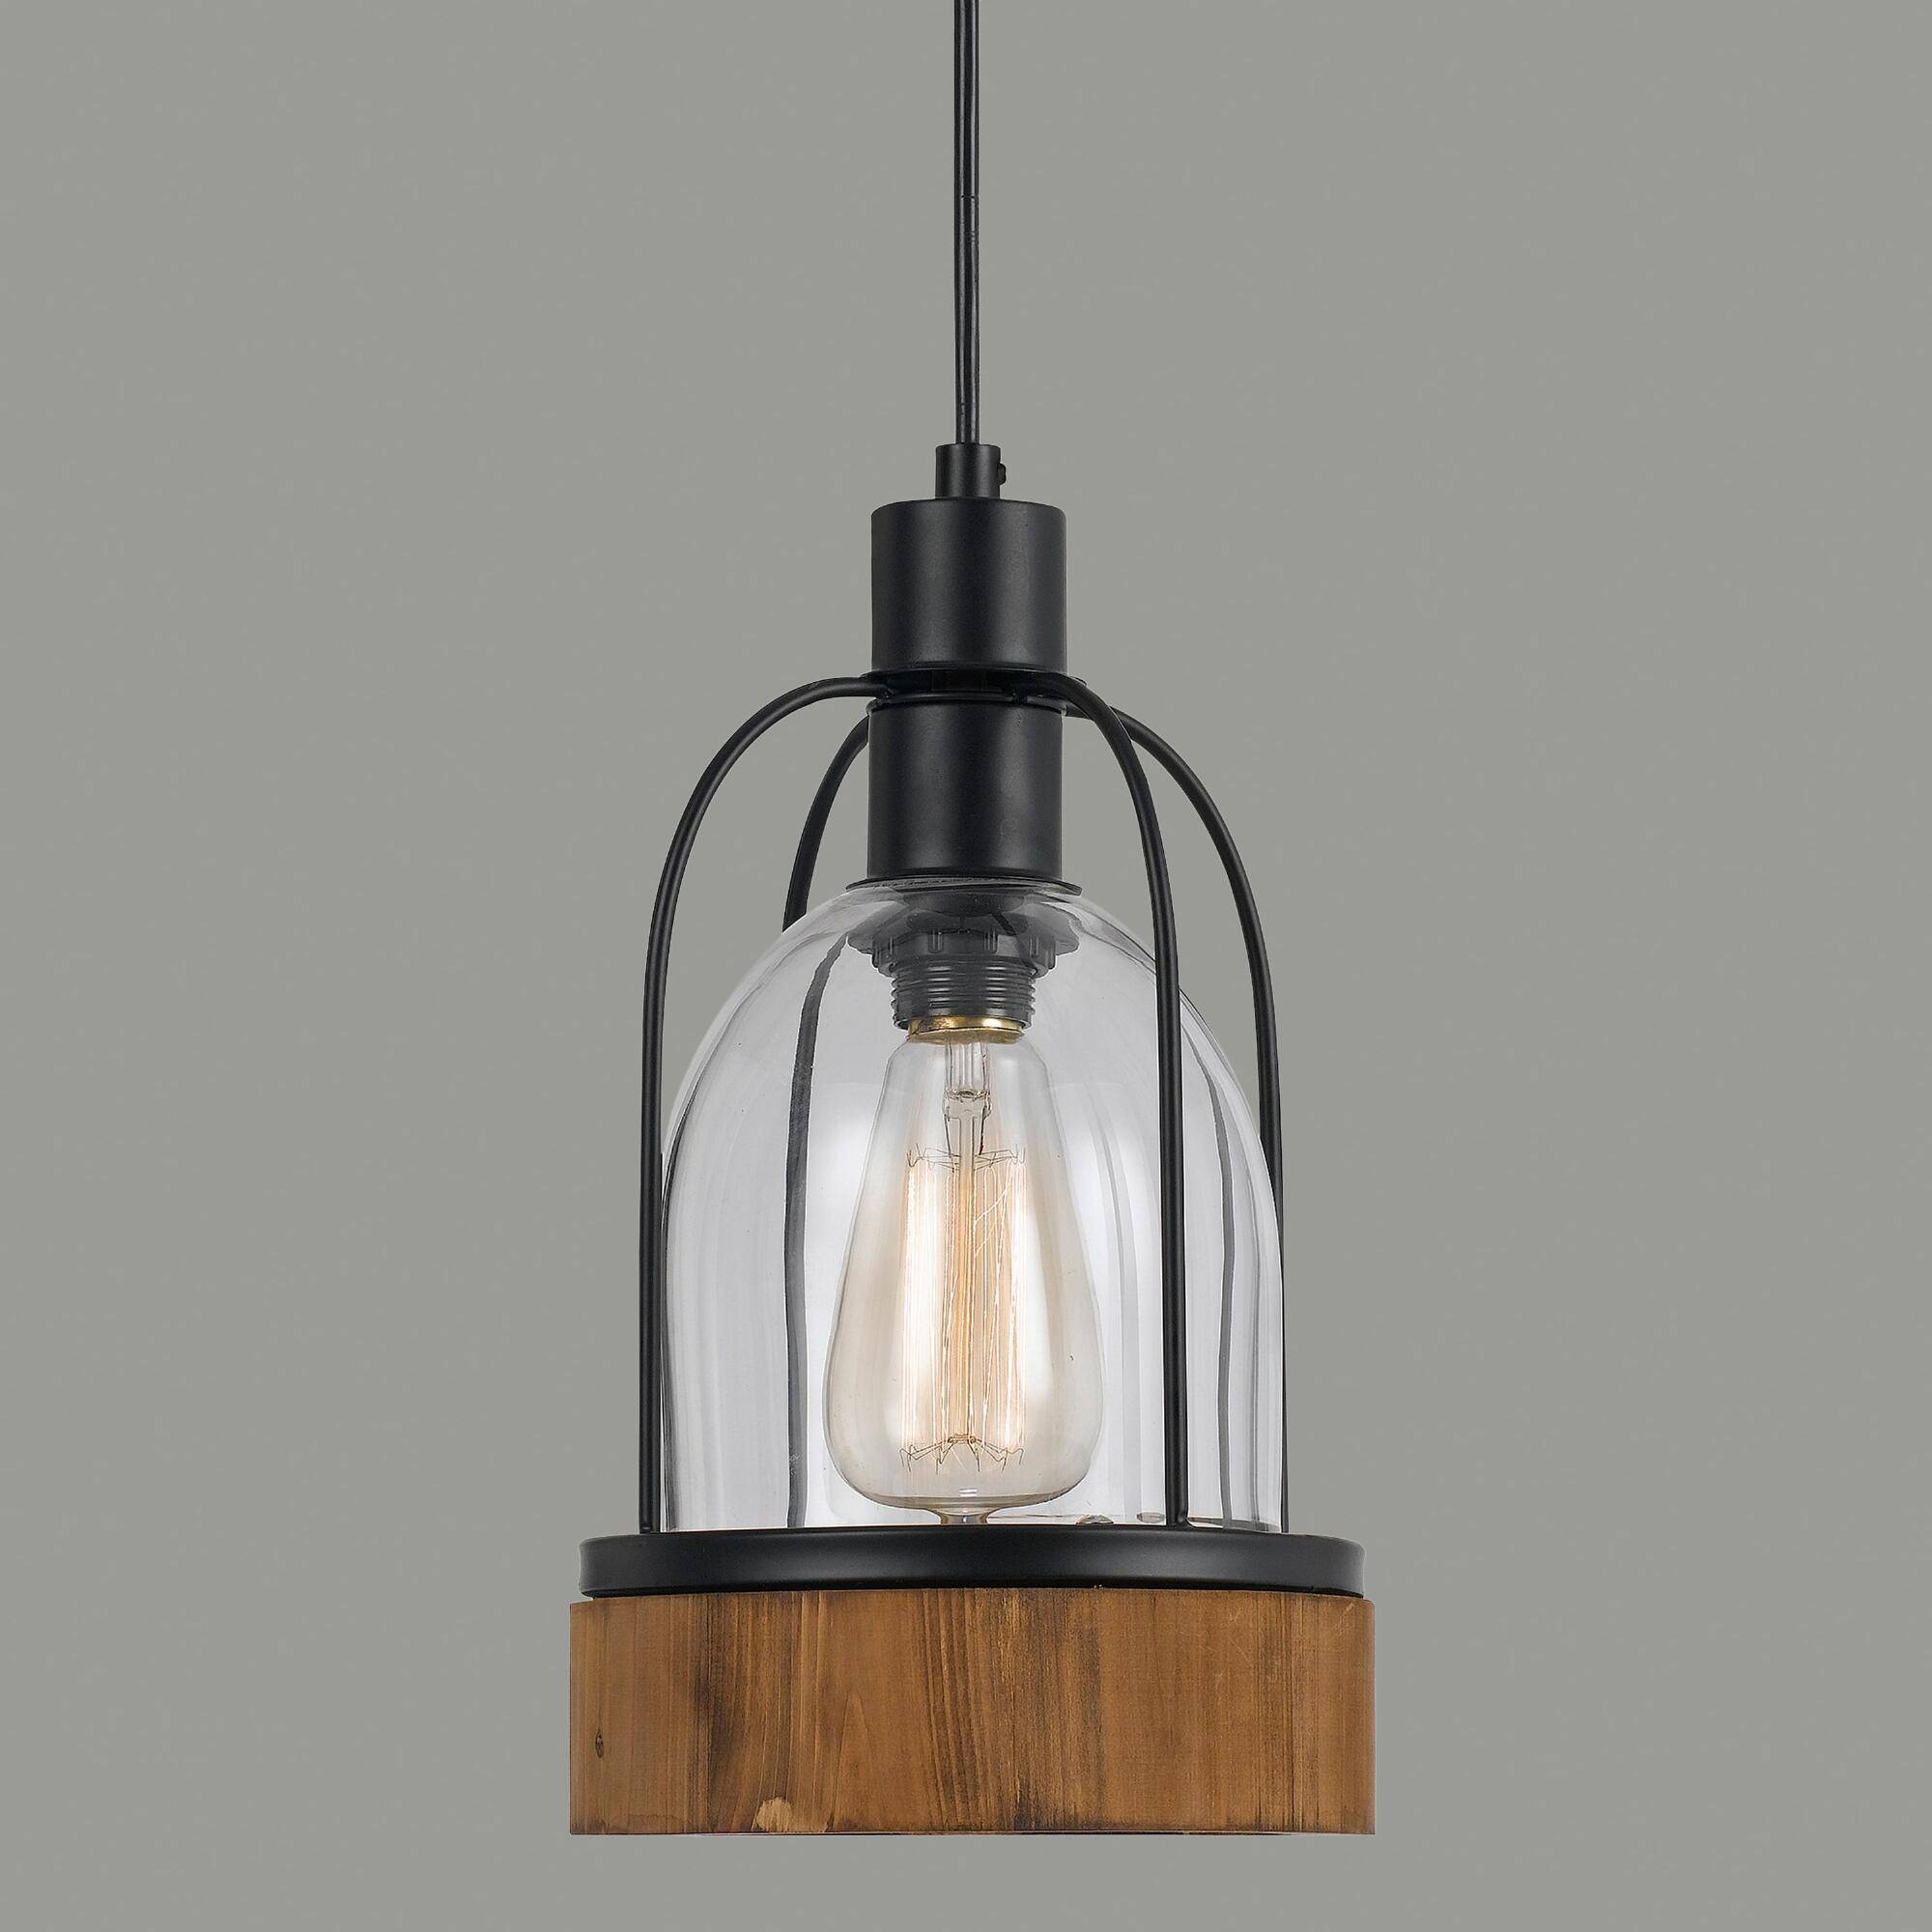 Lighting Design Ideas: Nice Fixtures Industrial Style Pendant regarding Industrial Style Pendant Light Fixtures (Image 12 of 15)